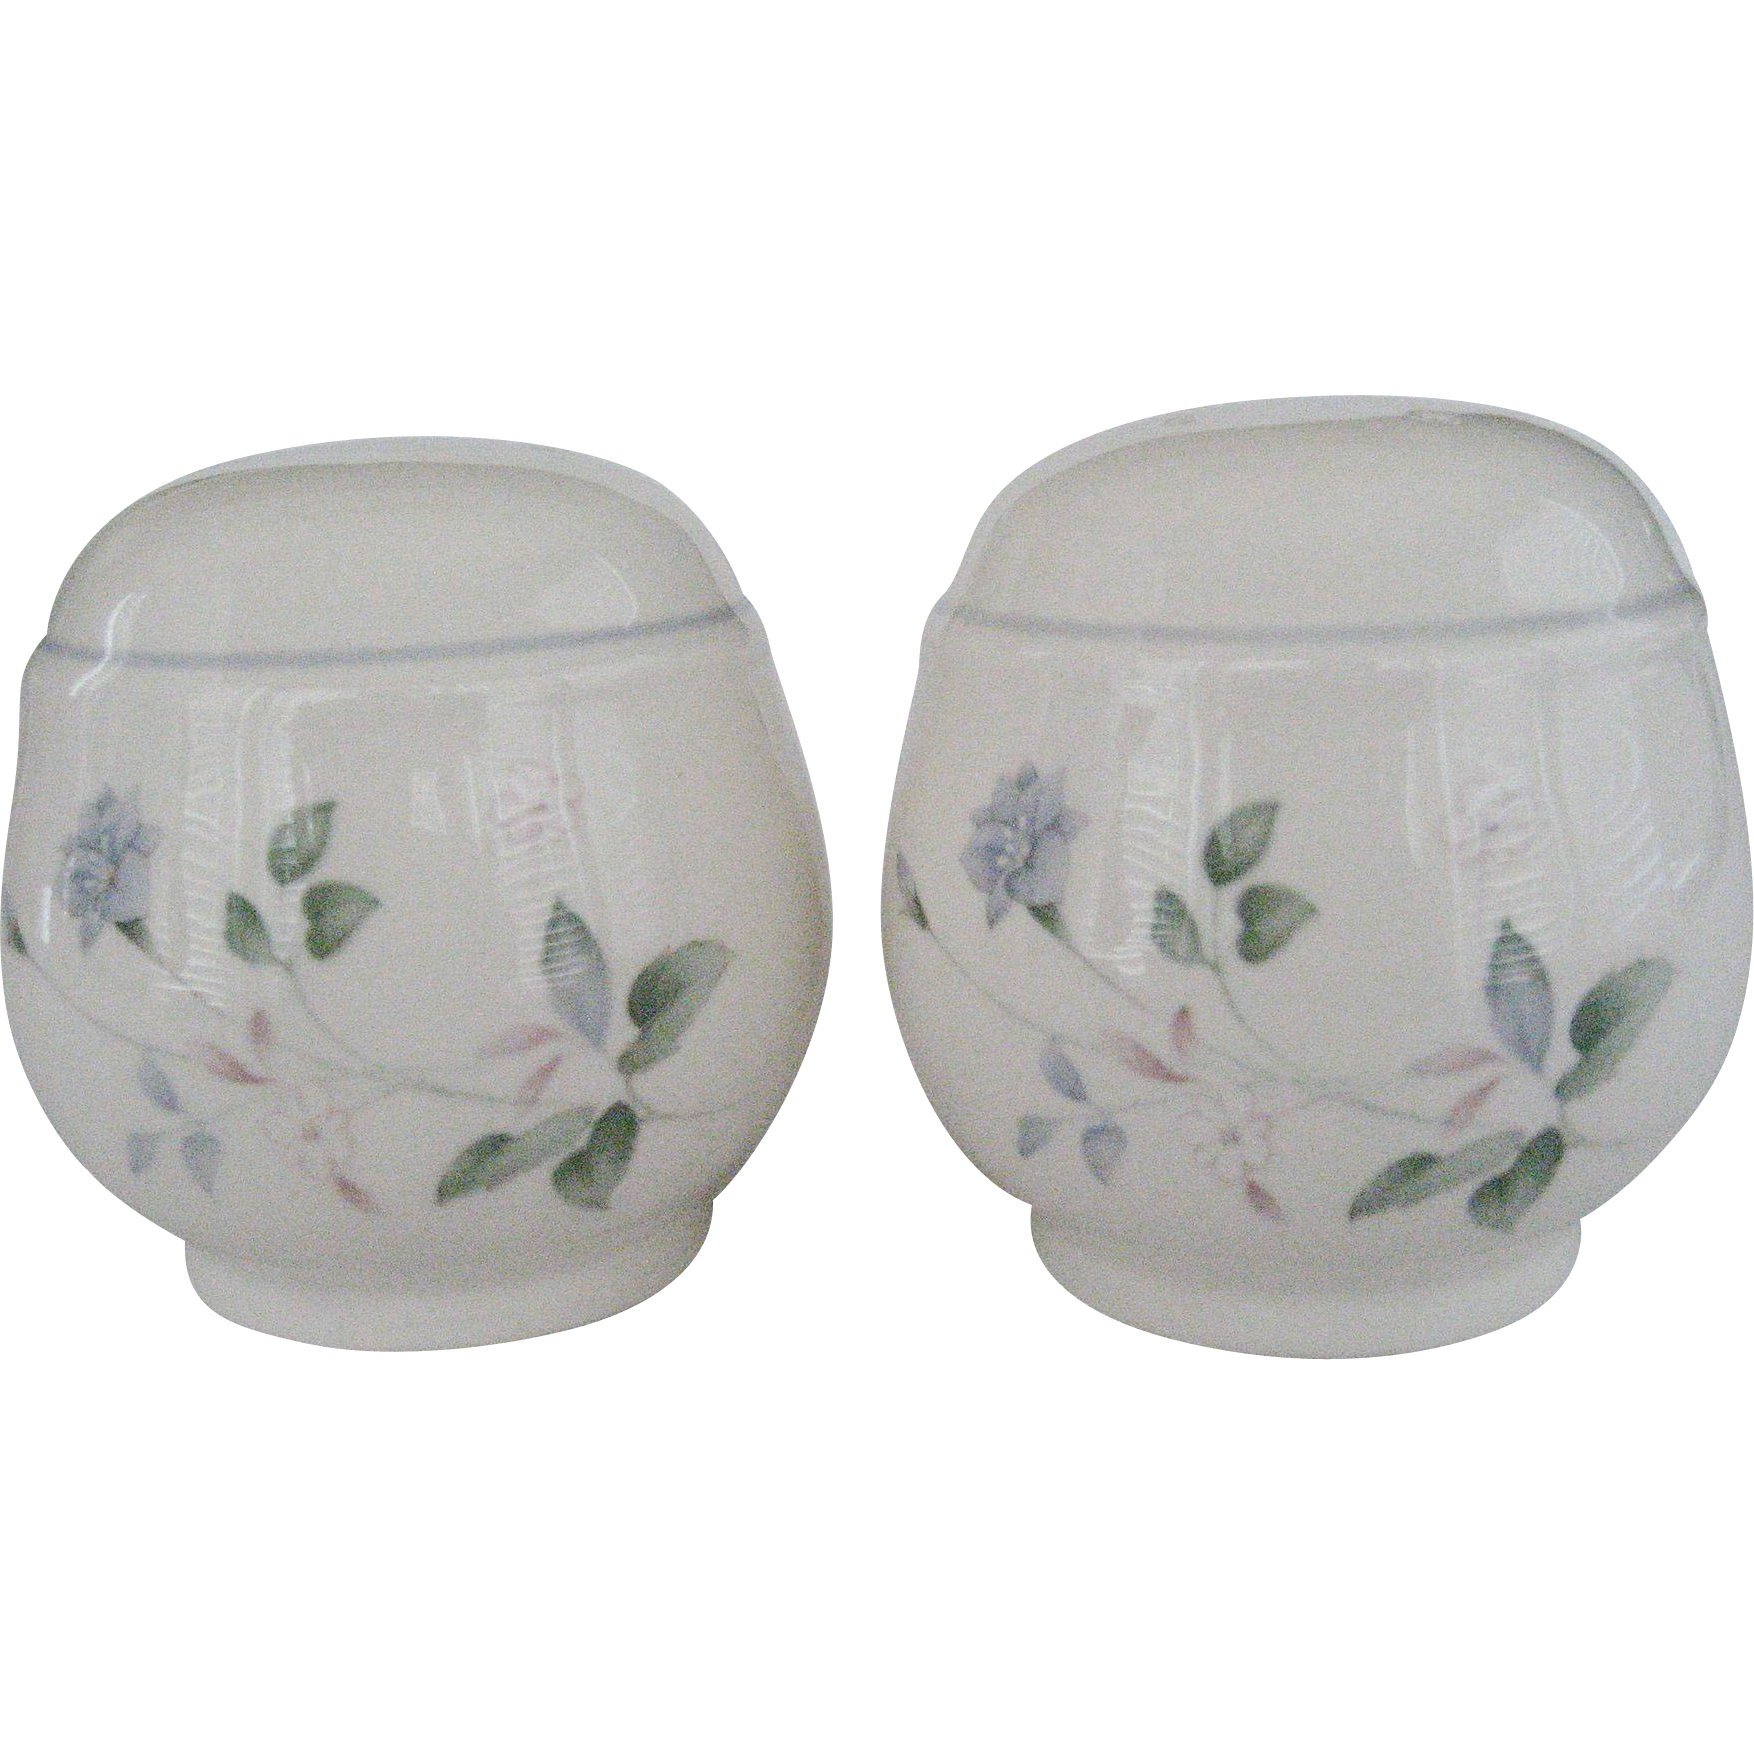 Noritake Keltcraft Ireland Salt & Pepper Shakers - Cortland